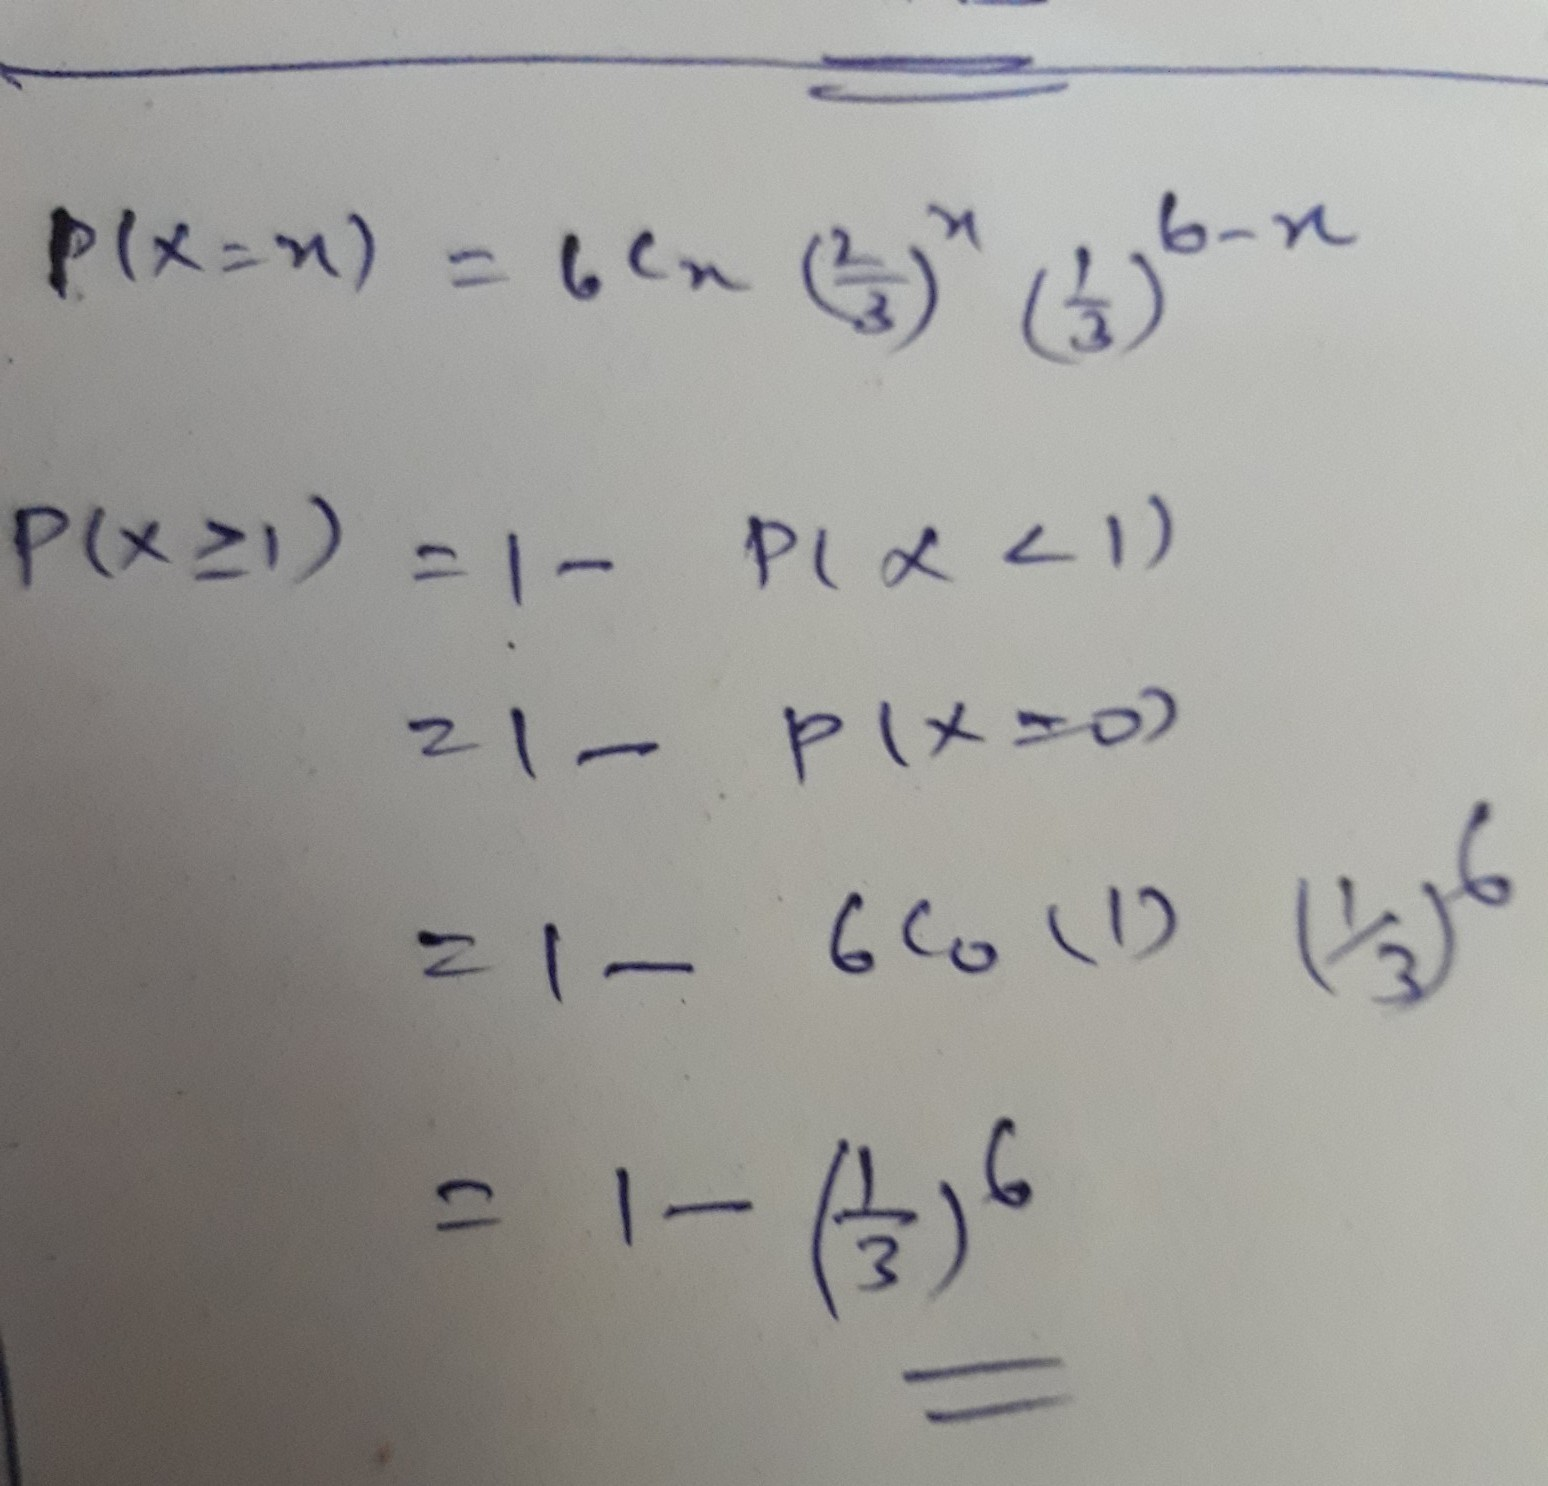 The Mean And Variance Of Binomial Distribution Are 4 And 4